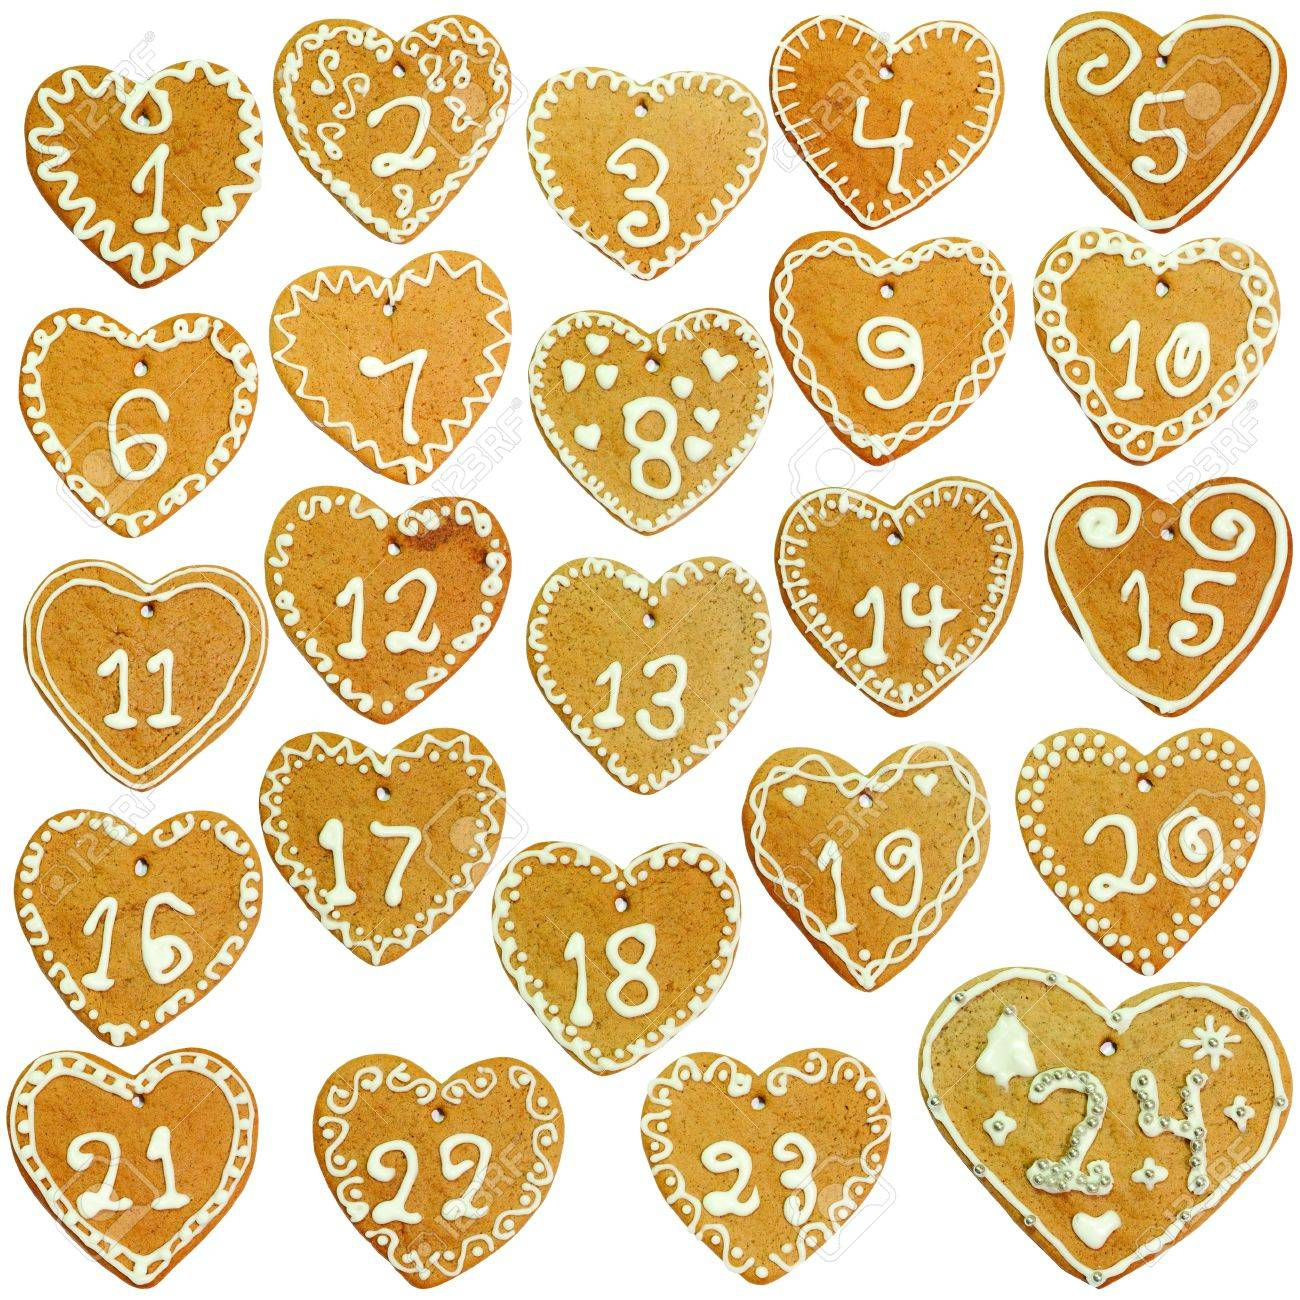 Gingerbread calendar; 24 decorated hearts Stock Photo - 11303646